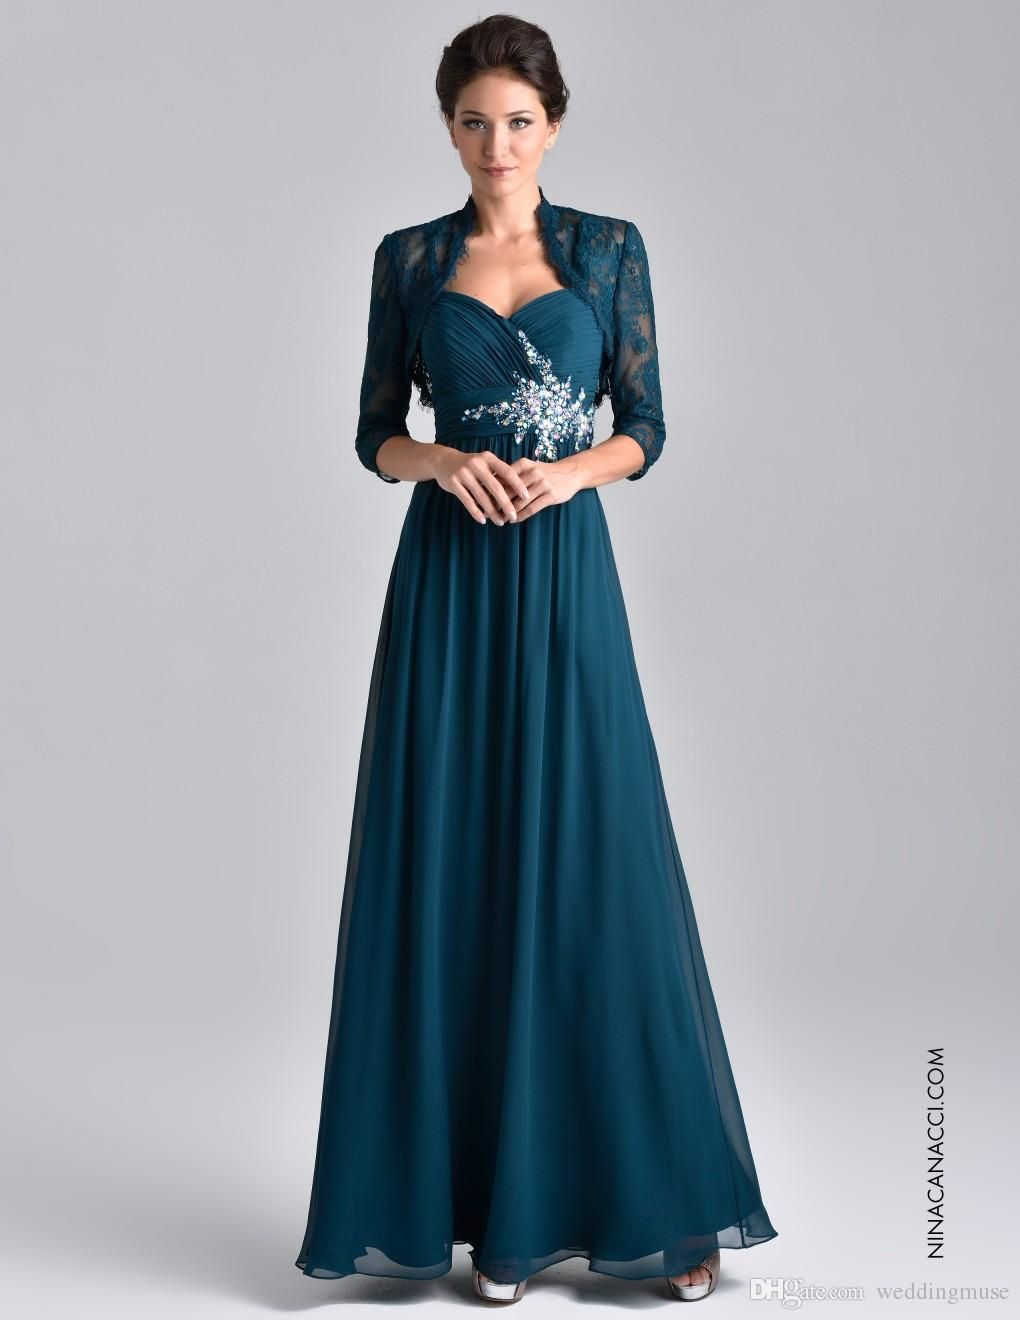 e0f7c1548d5 Wholesale 2015 Plus Size Two Piece Teal Blue Chiffon Mother Of The Bride  Dress With 3 4 Long Sleeve Lace Jacket Crystal Mother Evening Gowns  DL1314610